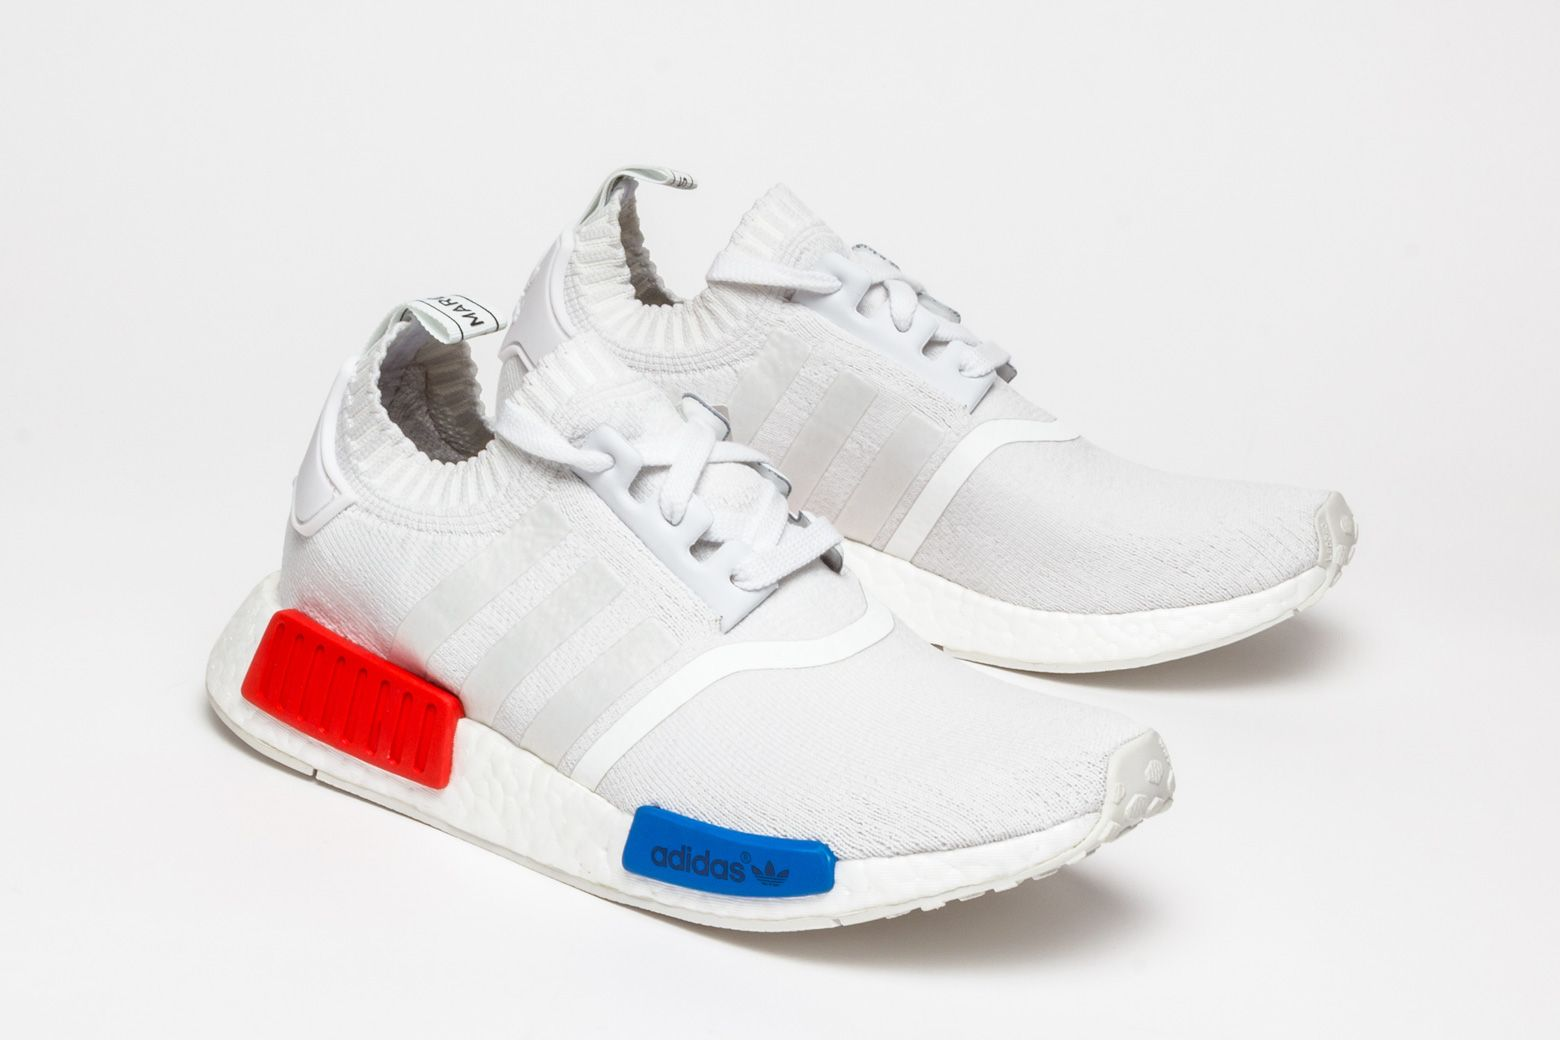 Adidas Nmd R1 Red White Blue,Adidas Nmd R1 White Red Blue,S79482 Ultra Boost Collection Adidas NMD R1 White Blue Red Adidas Ori